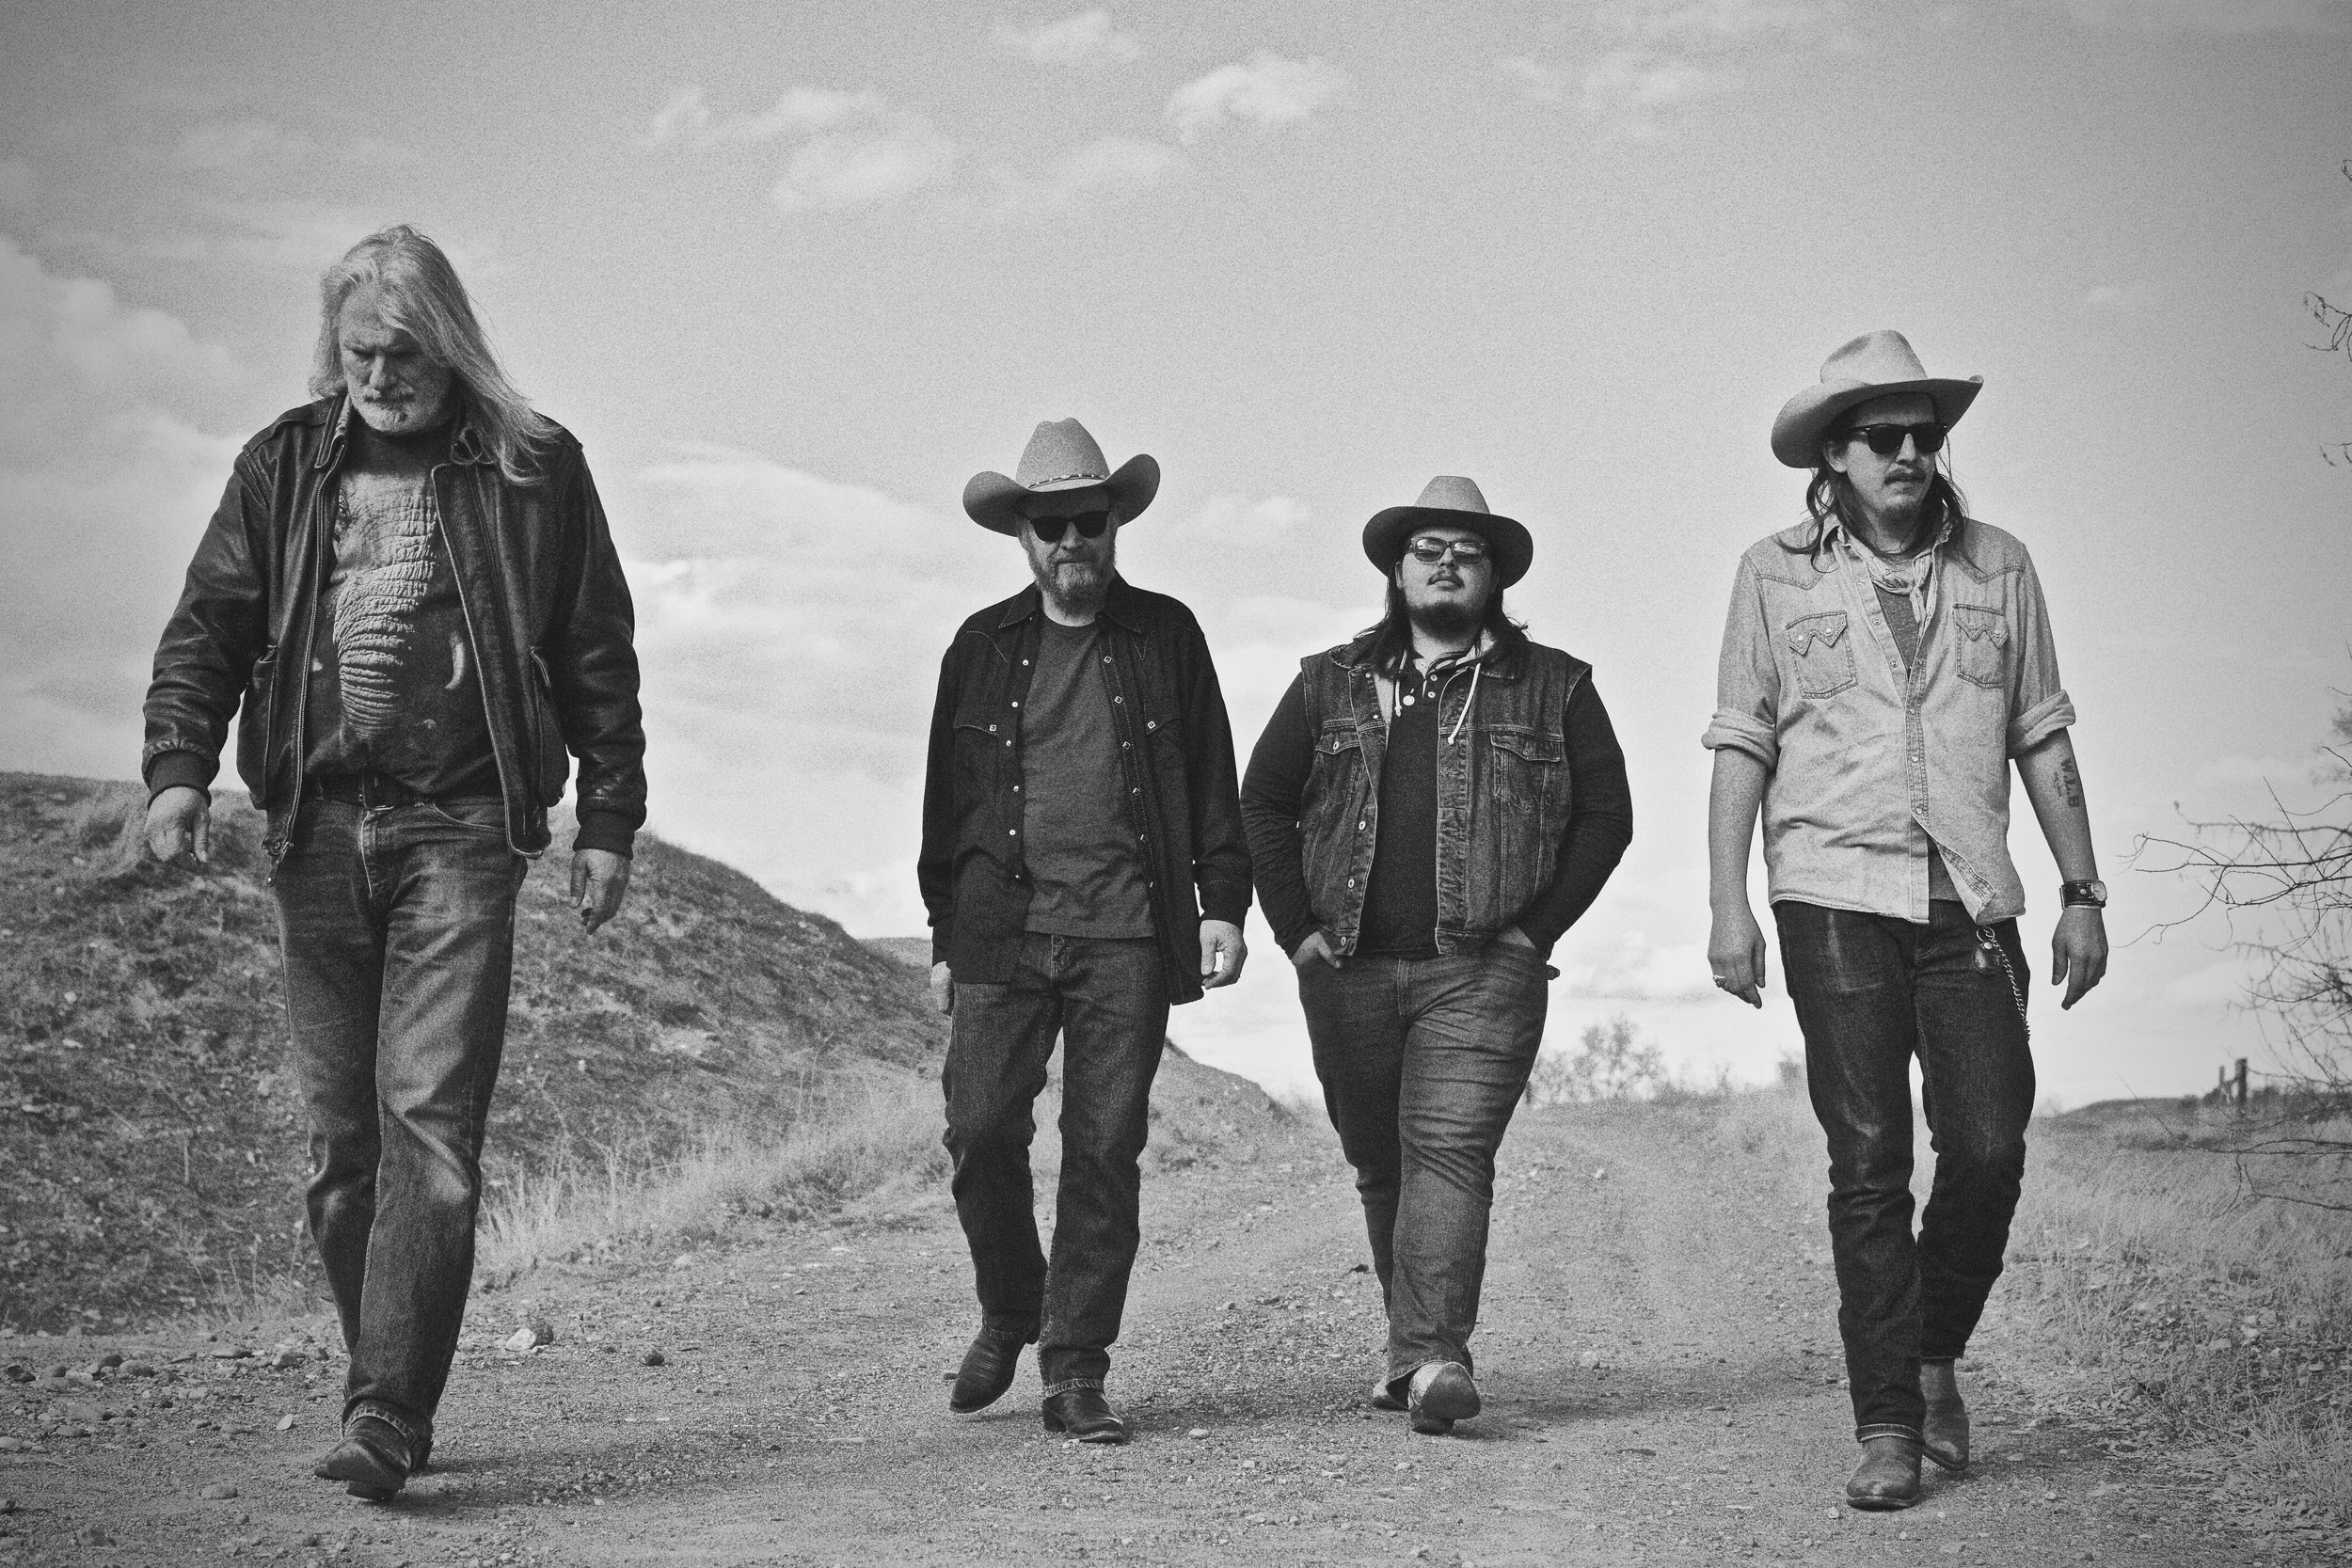 tylor & the train robbers -